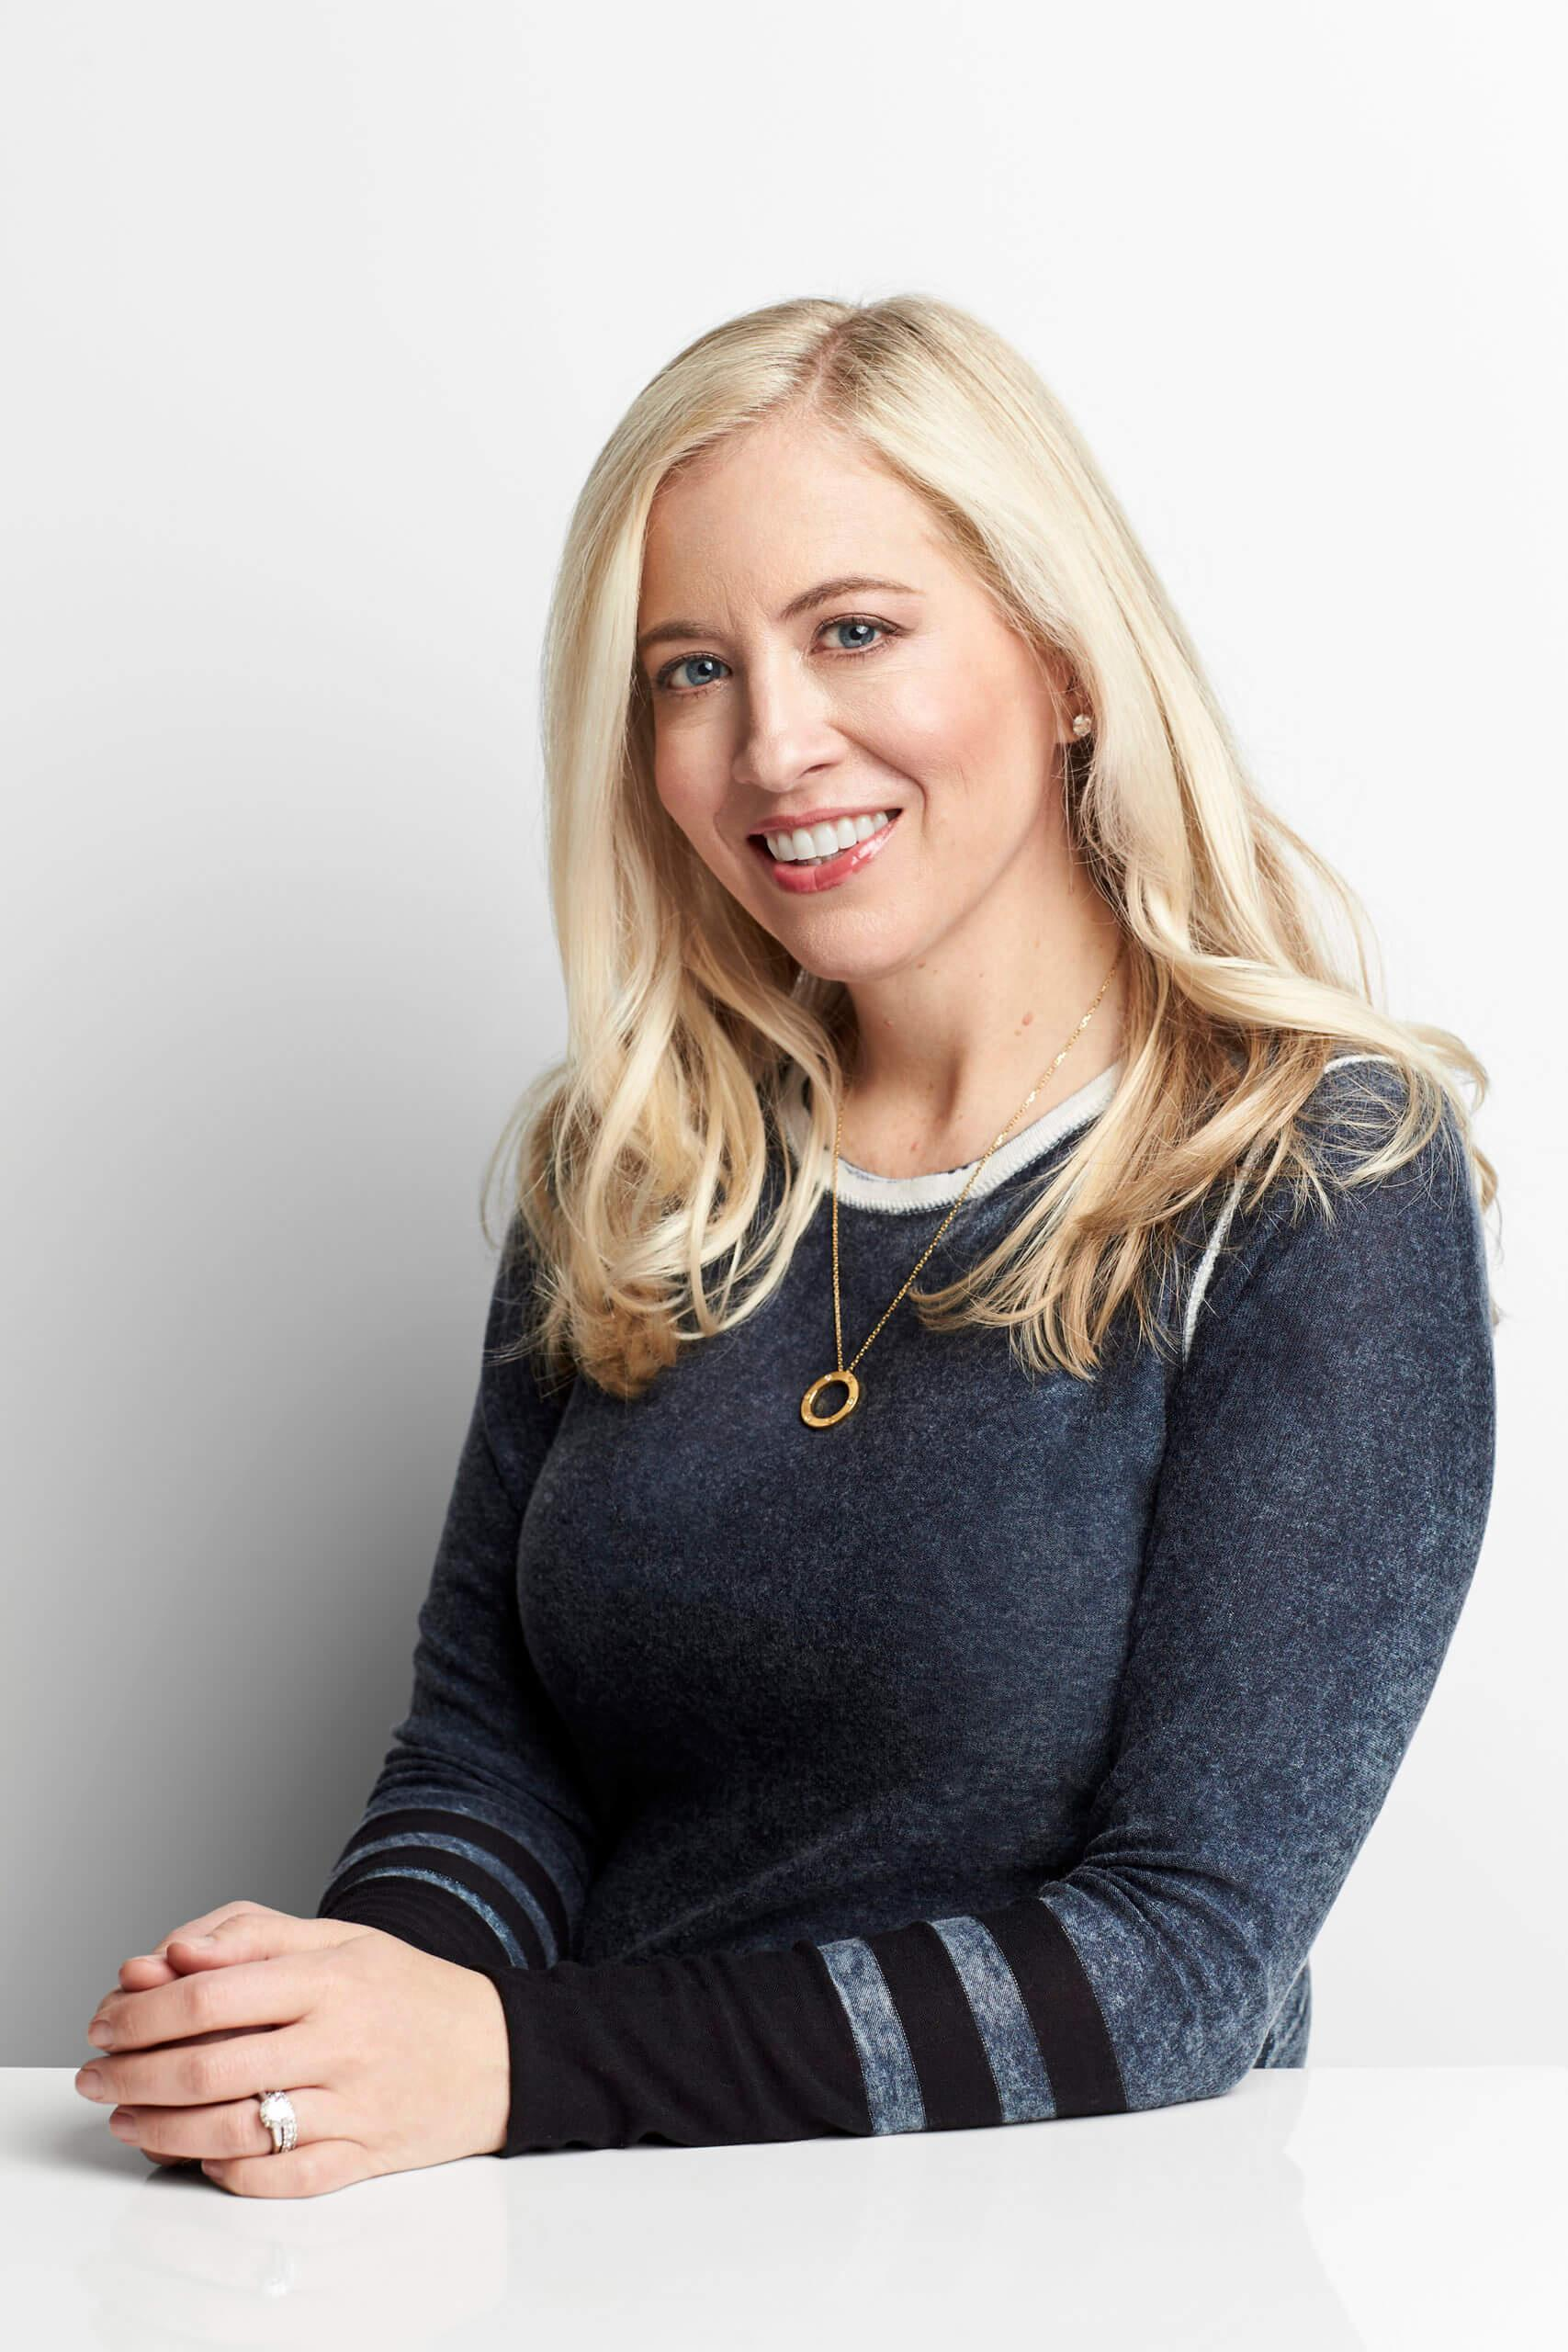 Elizabeth Spaulding will take over as Stitch Fix CEO in August.